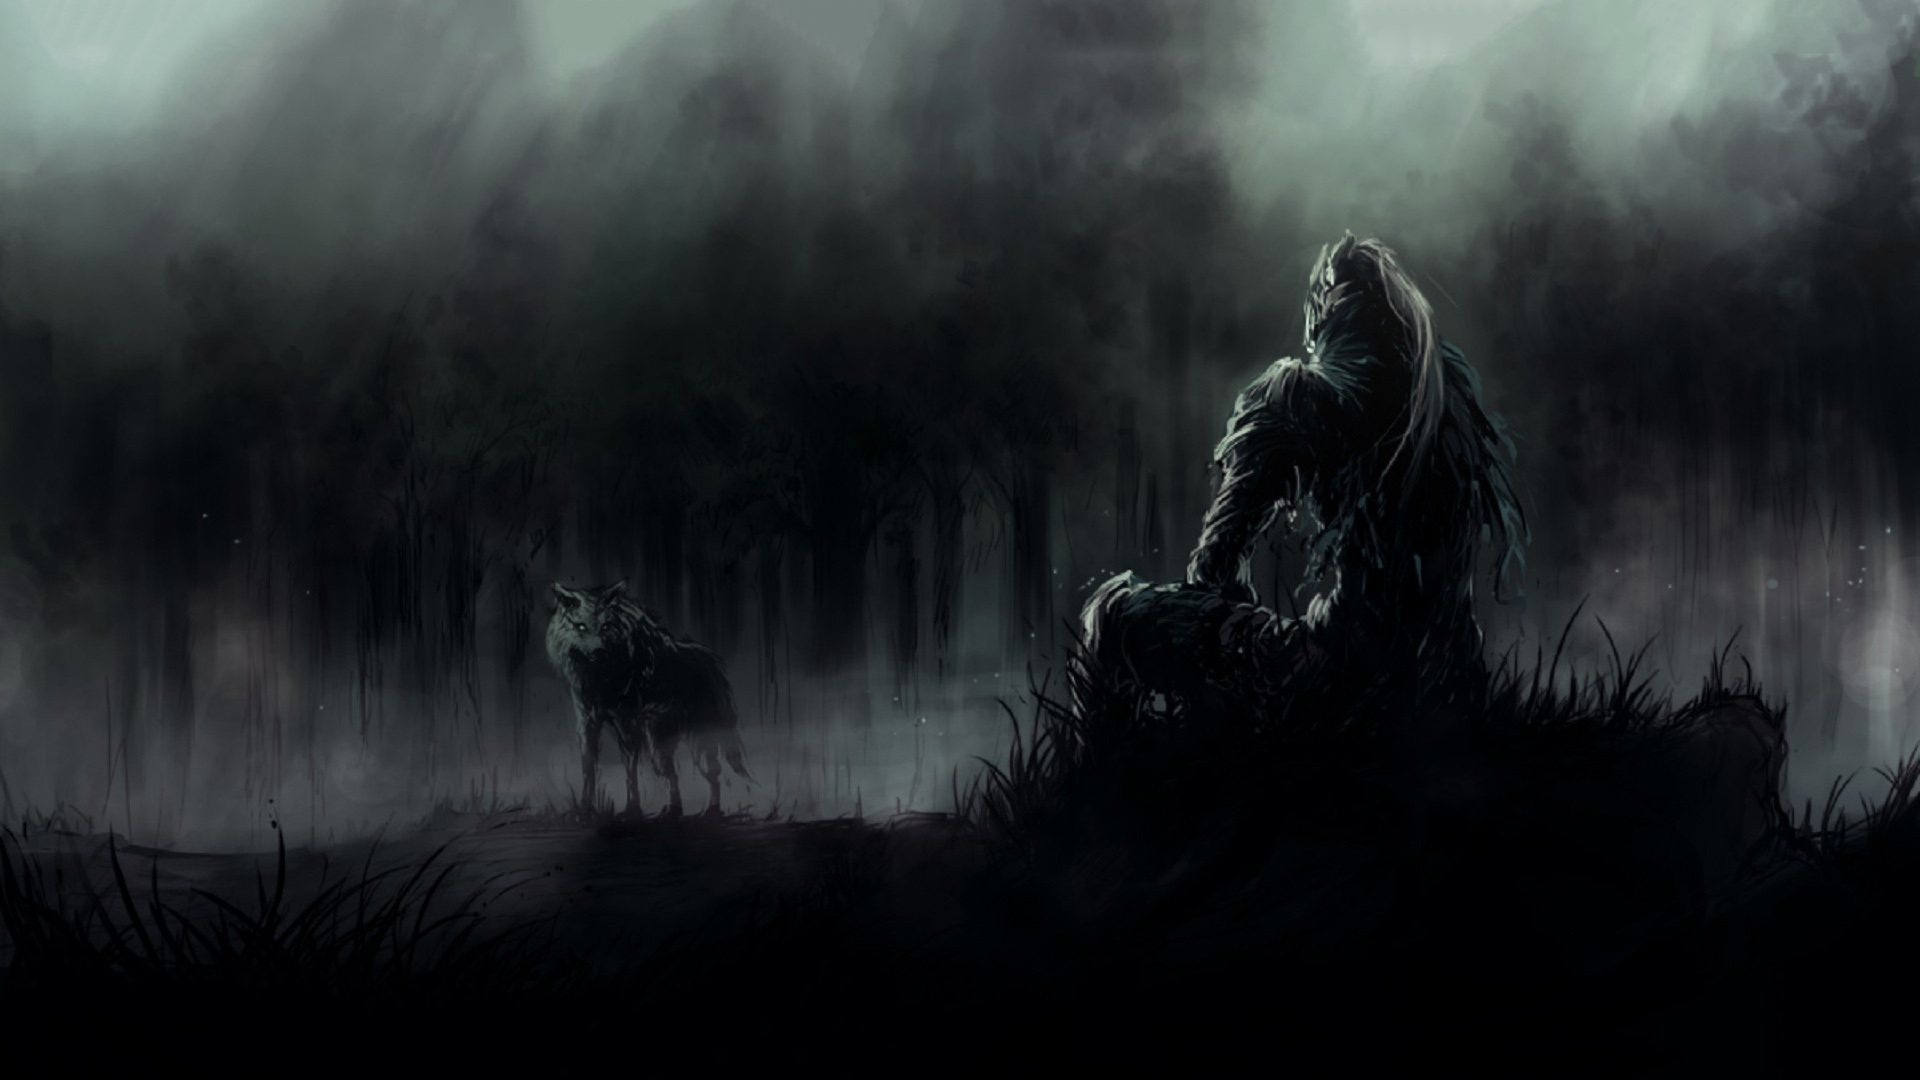 wallpaper.wiki-Desktop-Dark-Souls-2-HD-Backgrounds-Images